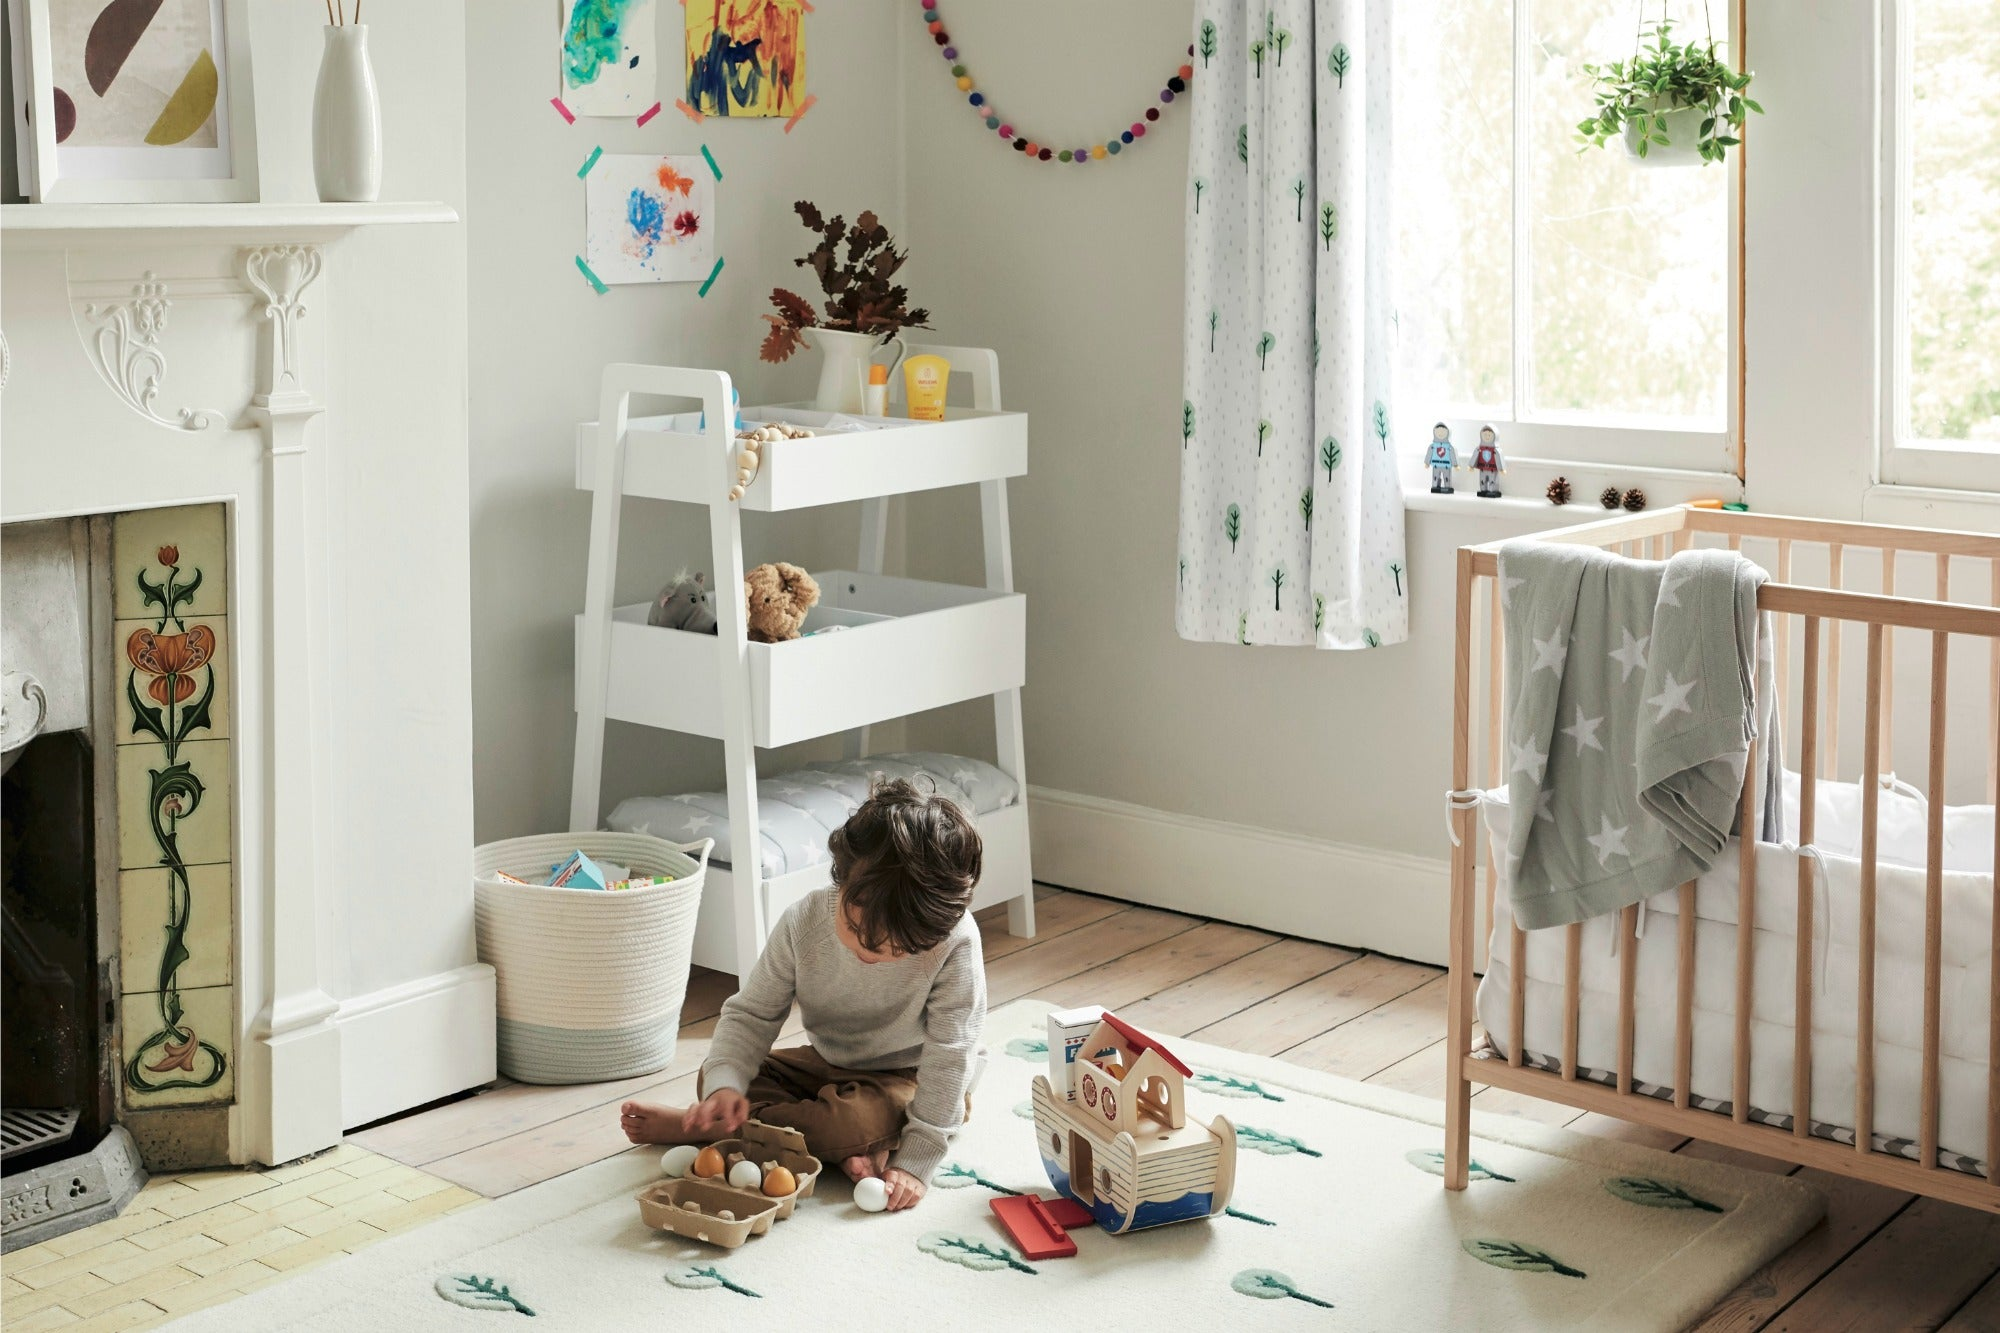 We talk interiors for children with Room To Bloom's Ursula Wesselingh